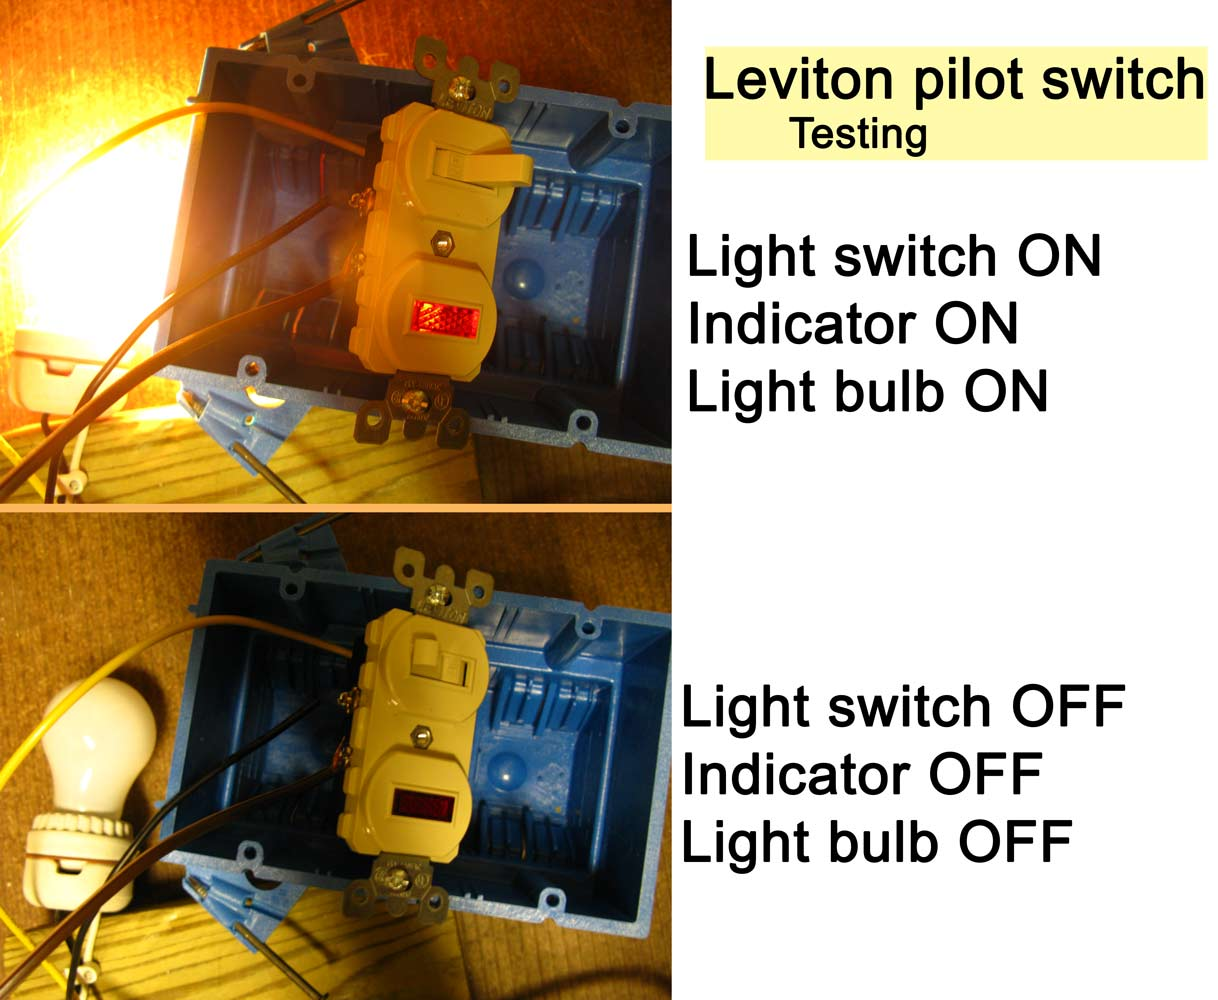 Leviton pilot switch testing IMG_1033 1000 how to wire cooper 277 pilot light switch leviton 5245 wiring diagram at readyjetset.co